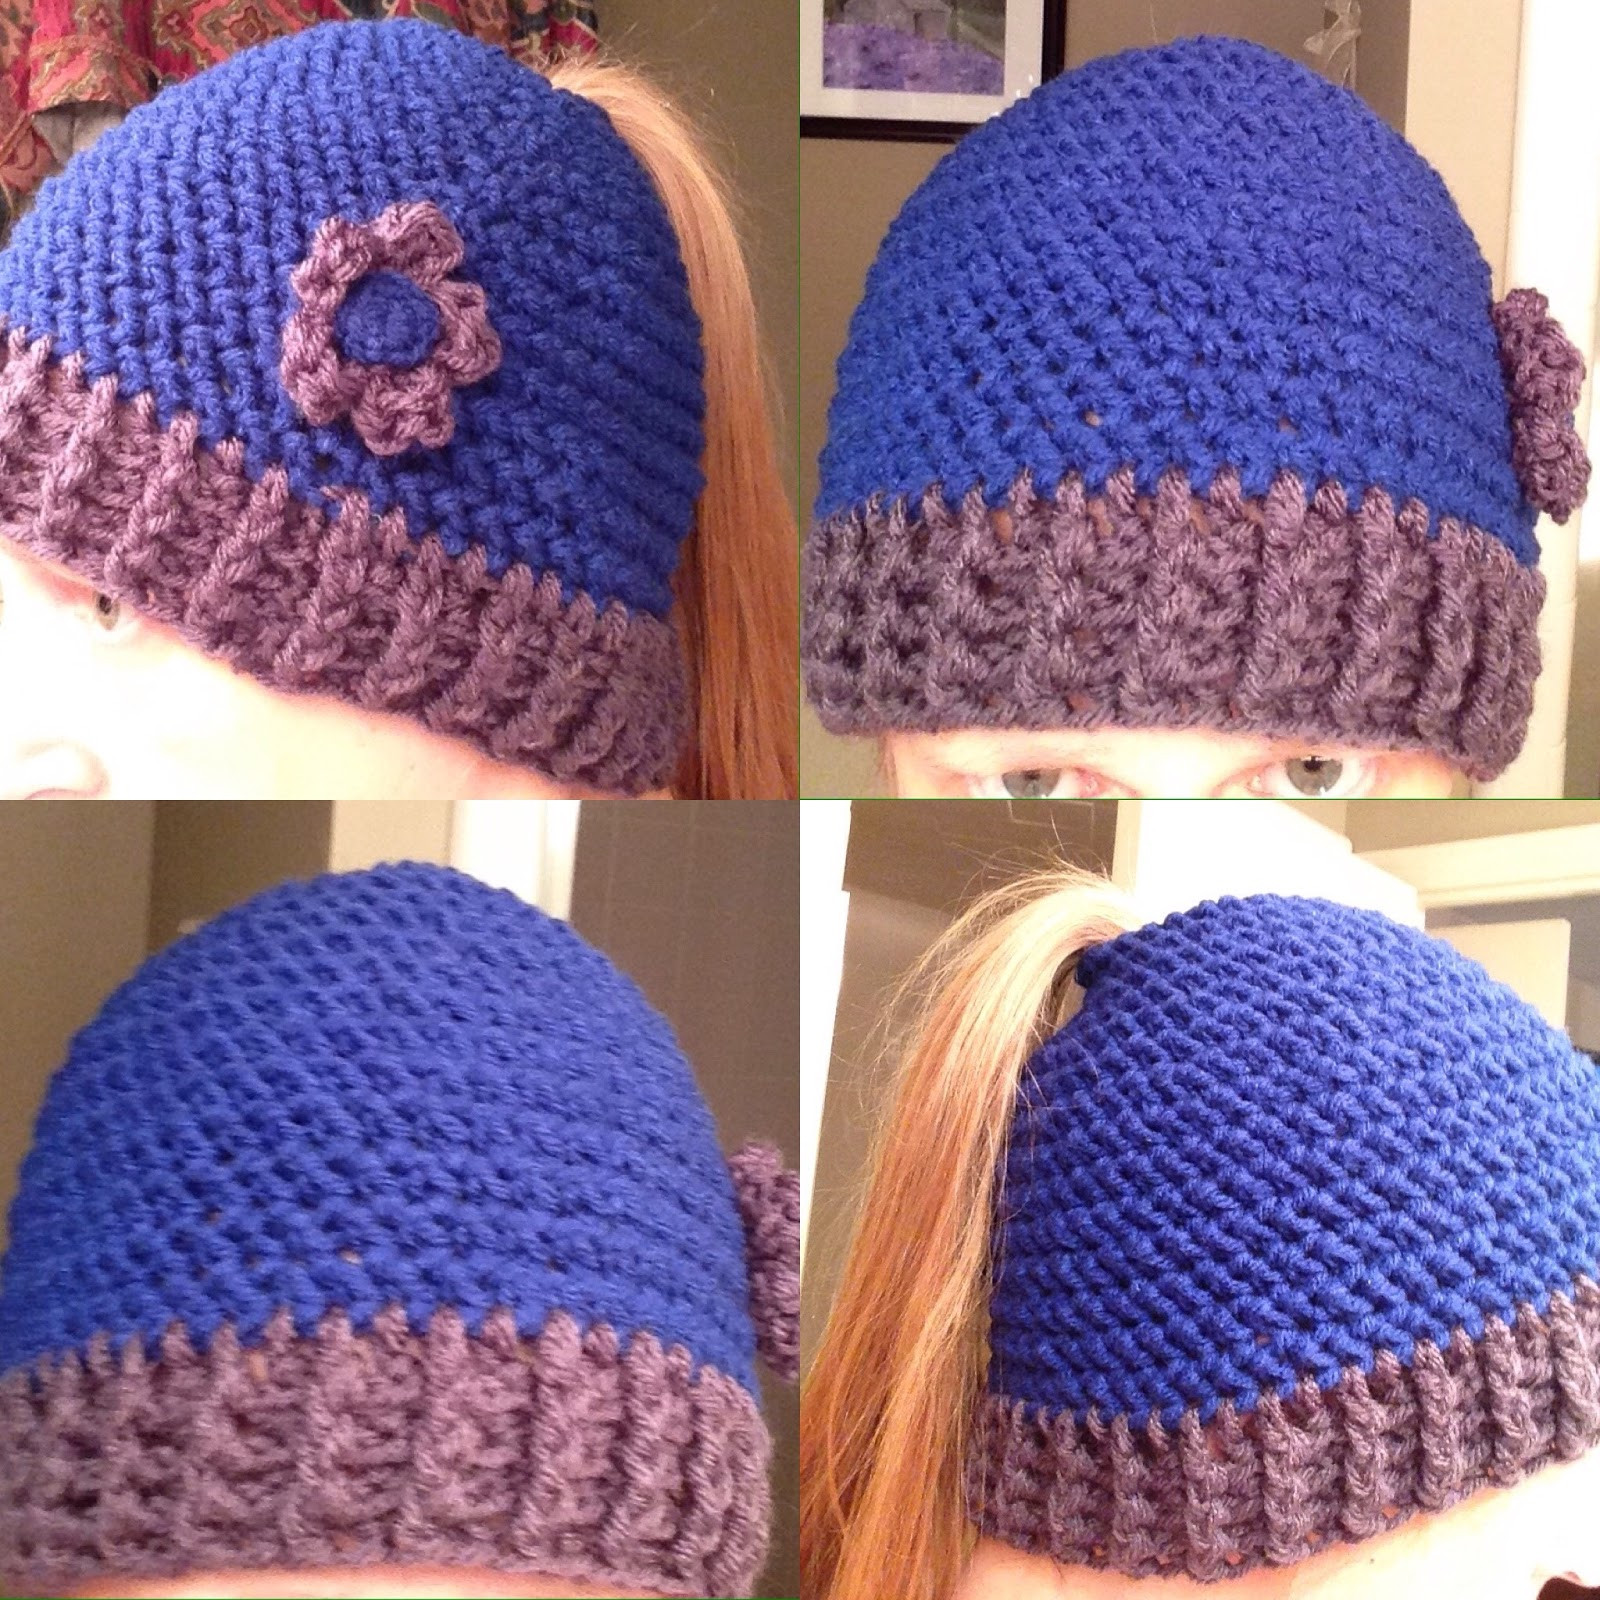 Awesome the Perfect Stitch Crochet Messy Bun Ponytail Hat Ponytail Hats Free Patterns Of Incredible 42 Ideas Ponytail Hats Free Patterns